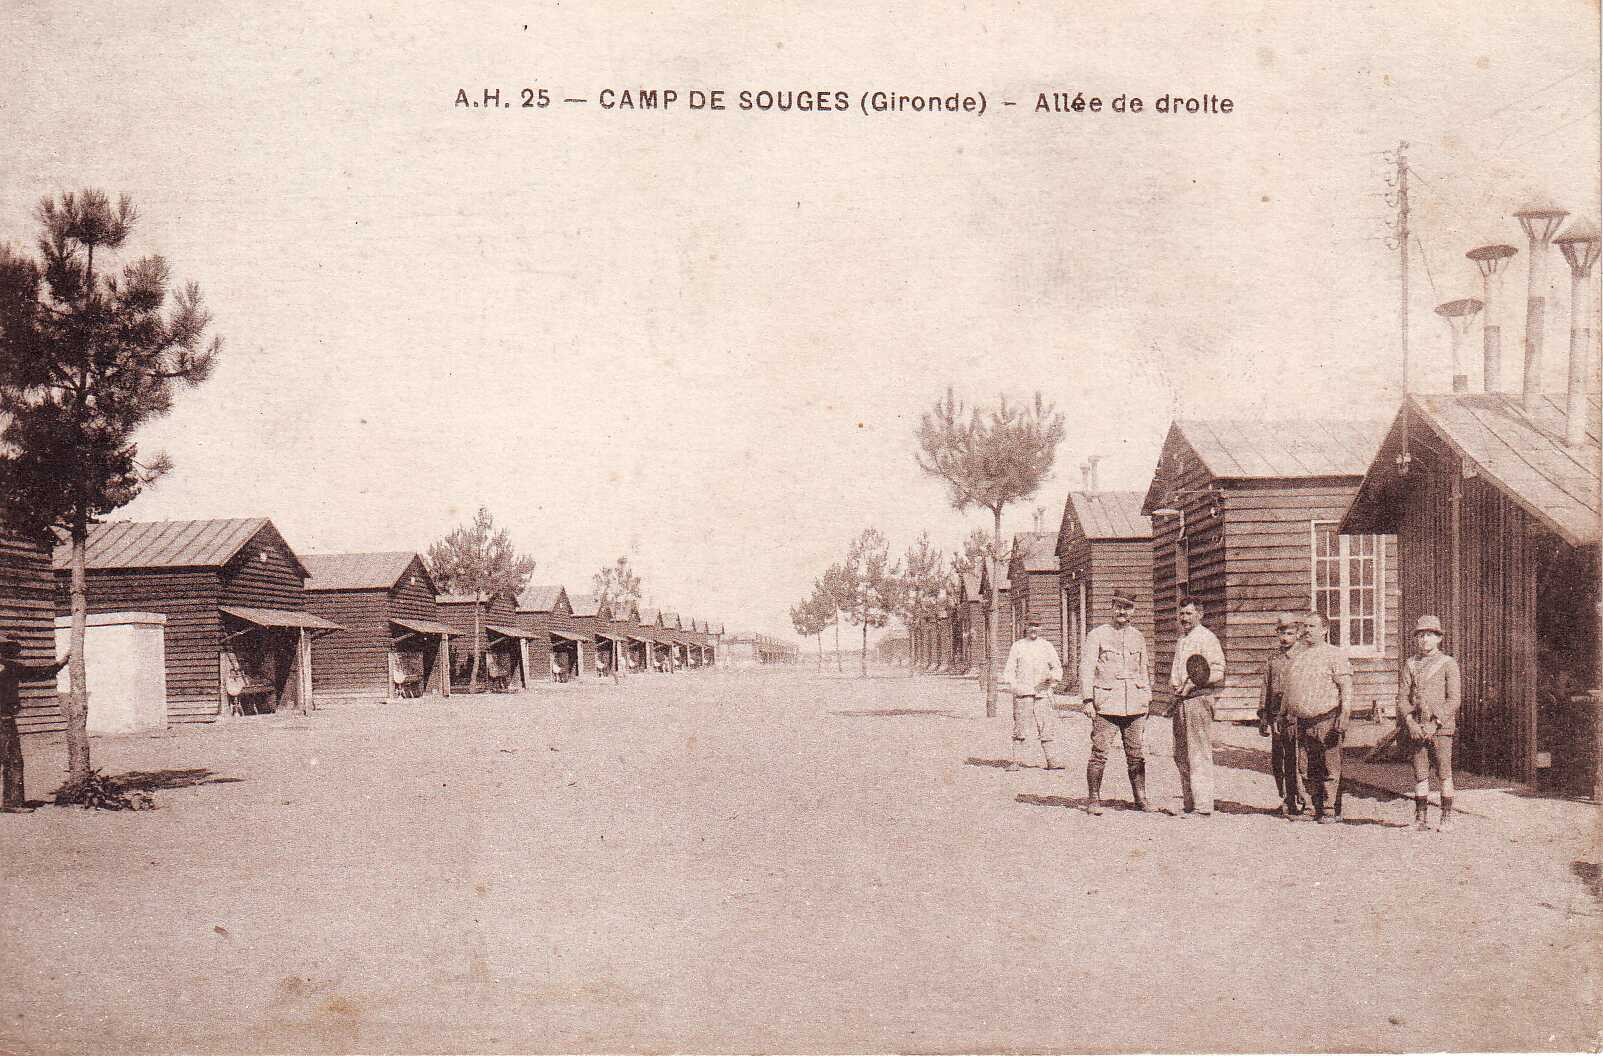 Camp-De-Souges-Gironde.jpg